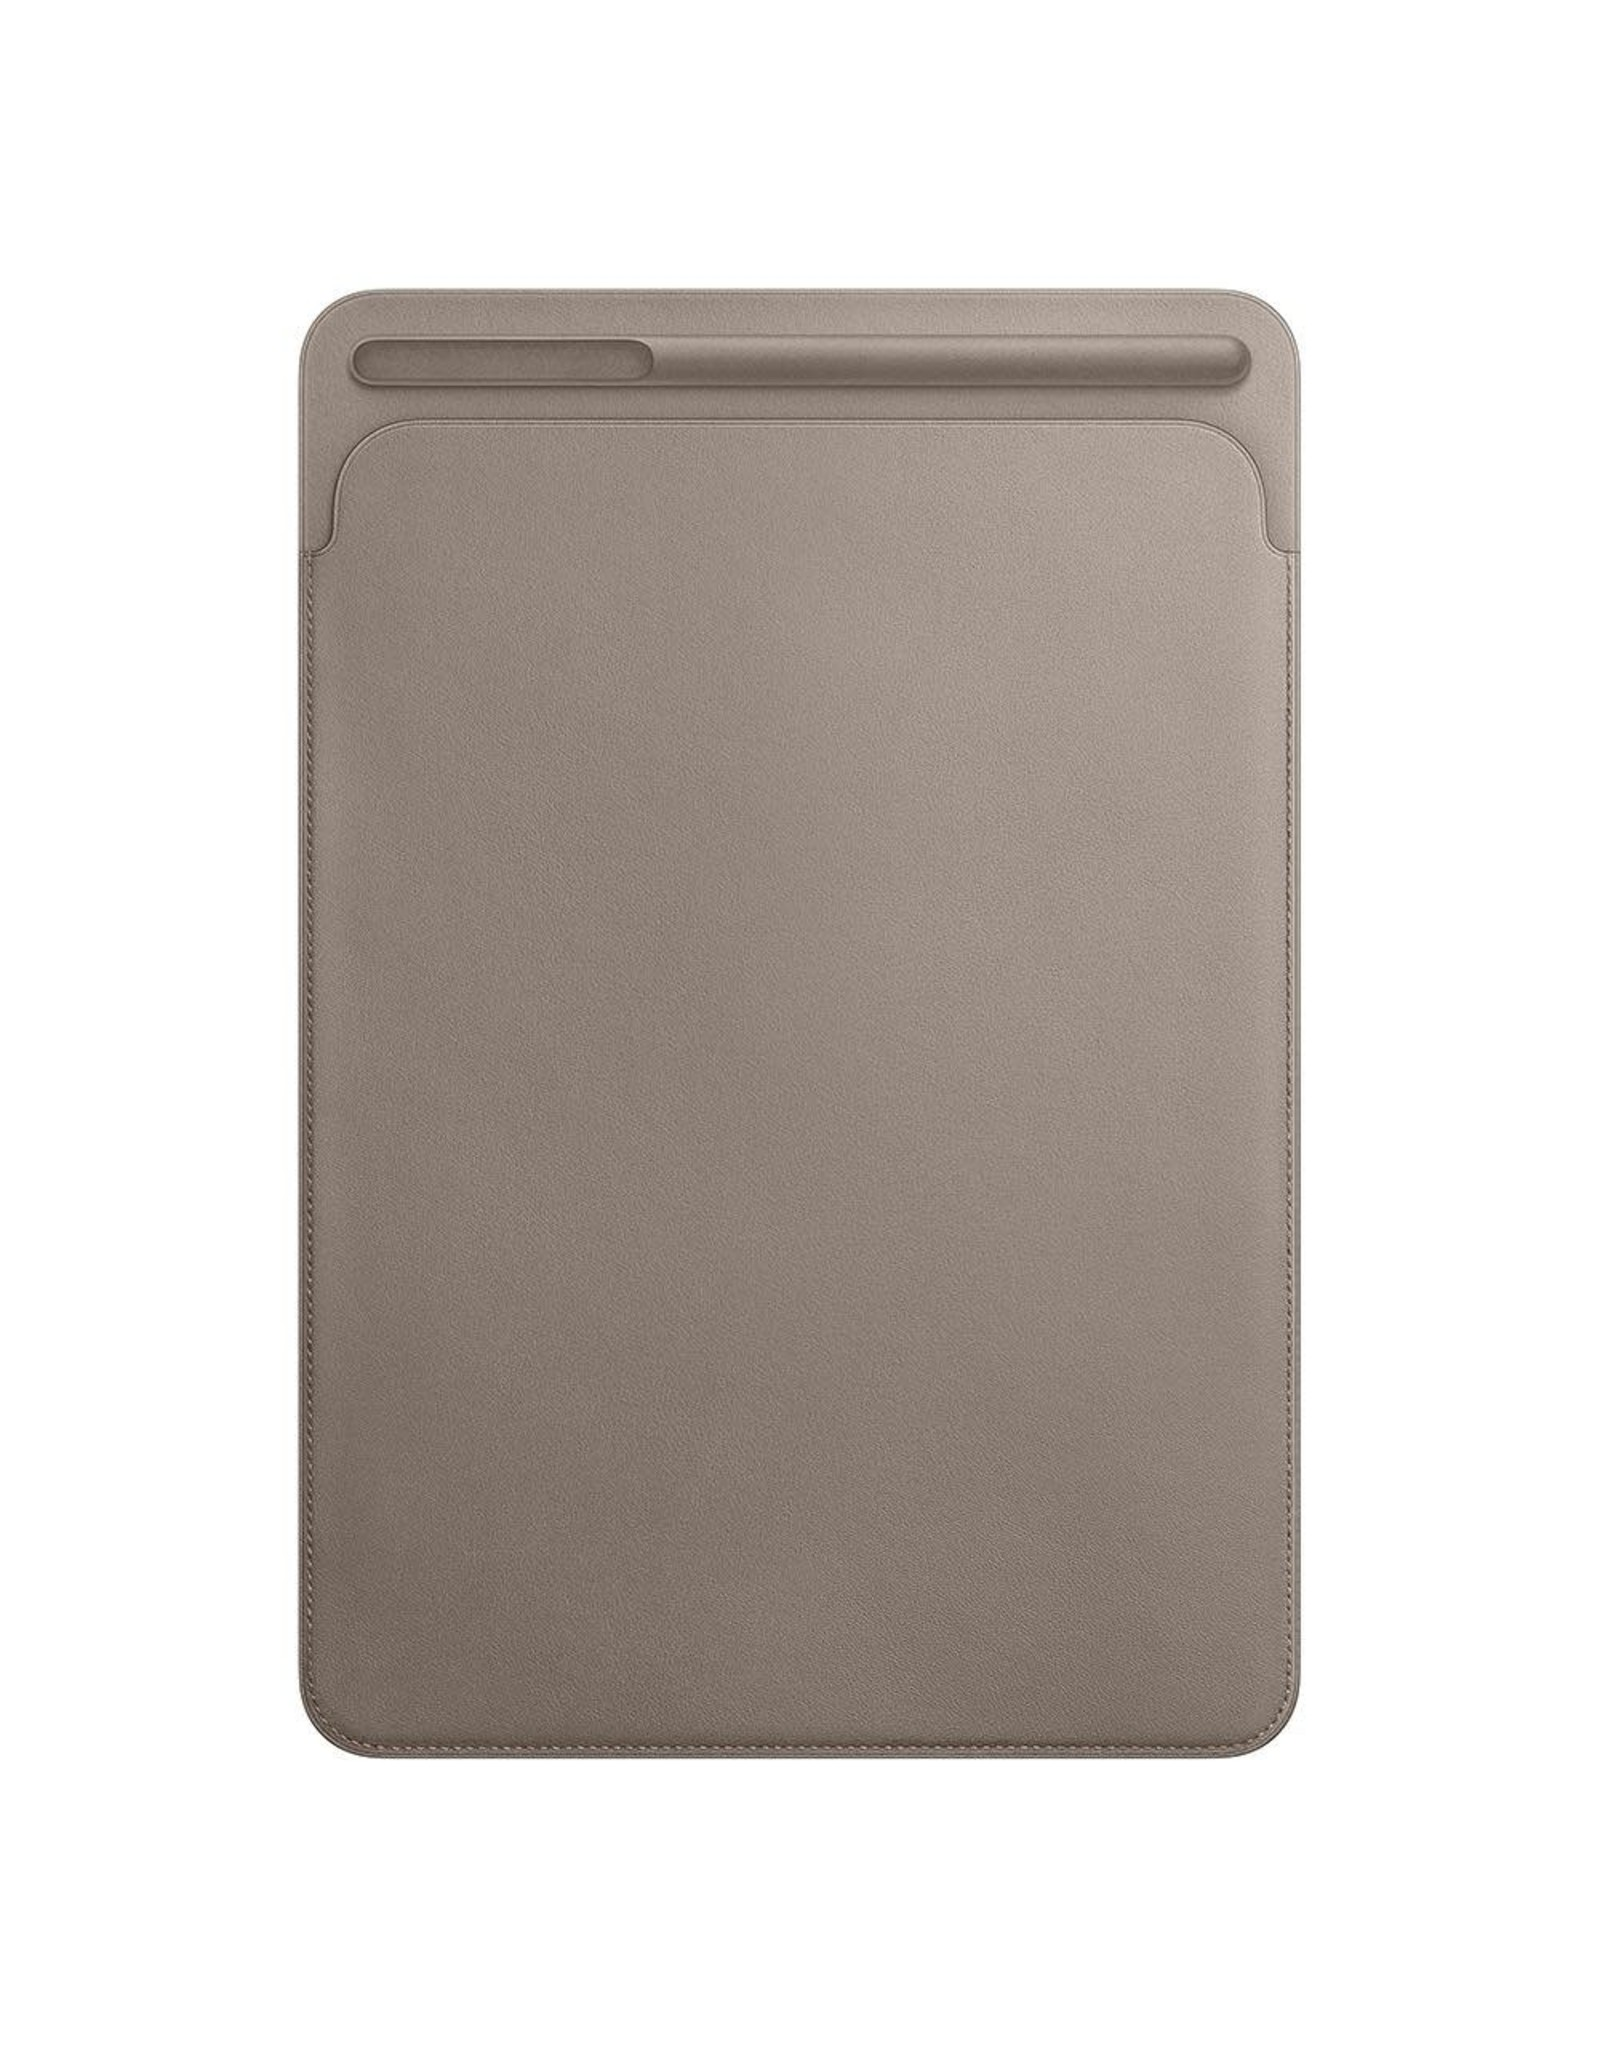 Apple Apple Leather Sleeve for 10.5-inch iPad Pro - Taupe